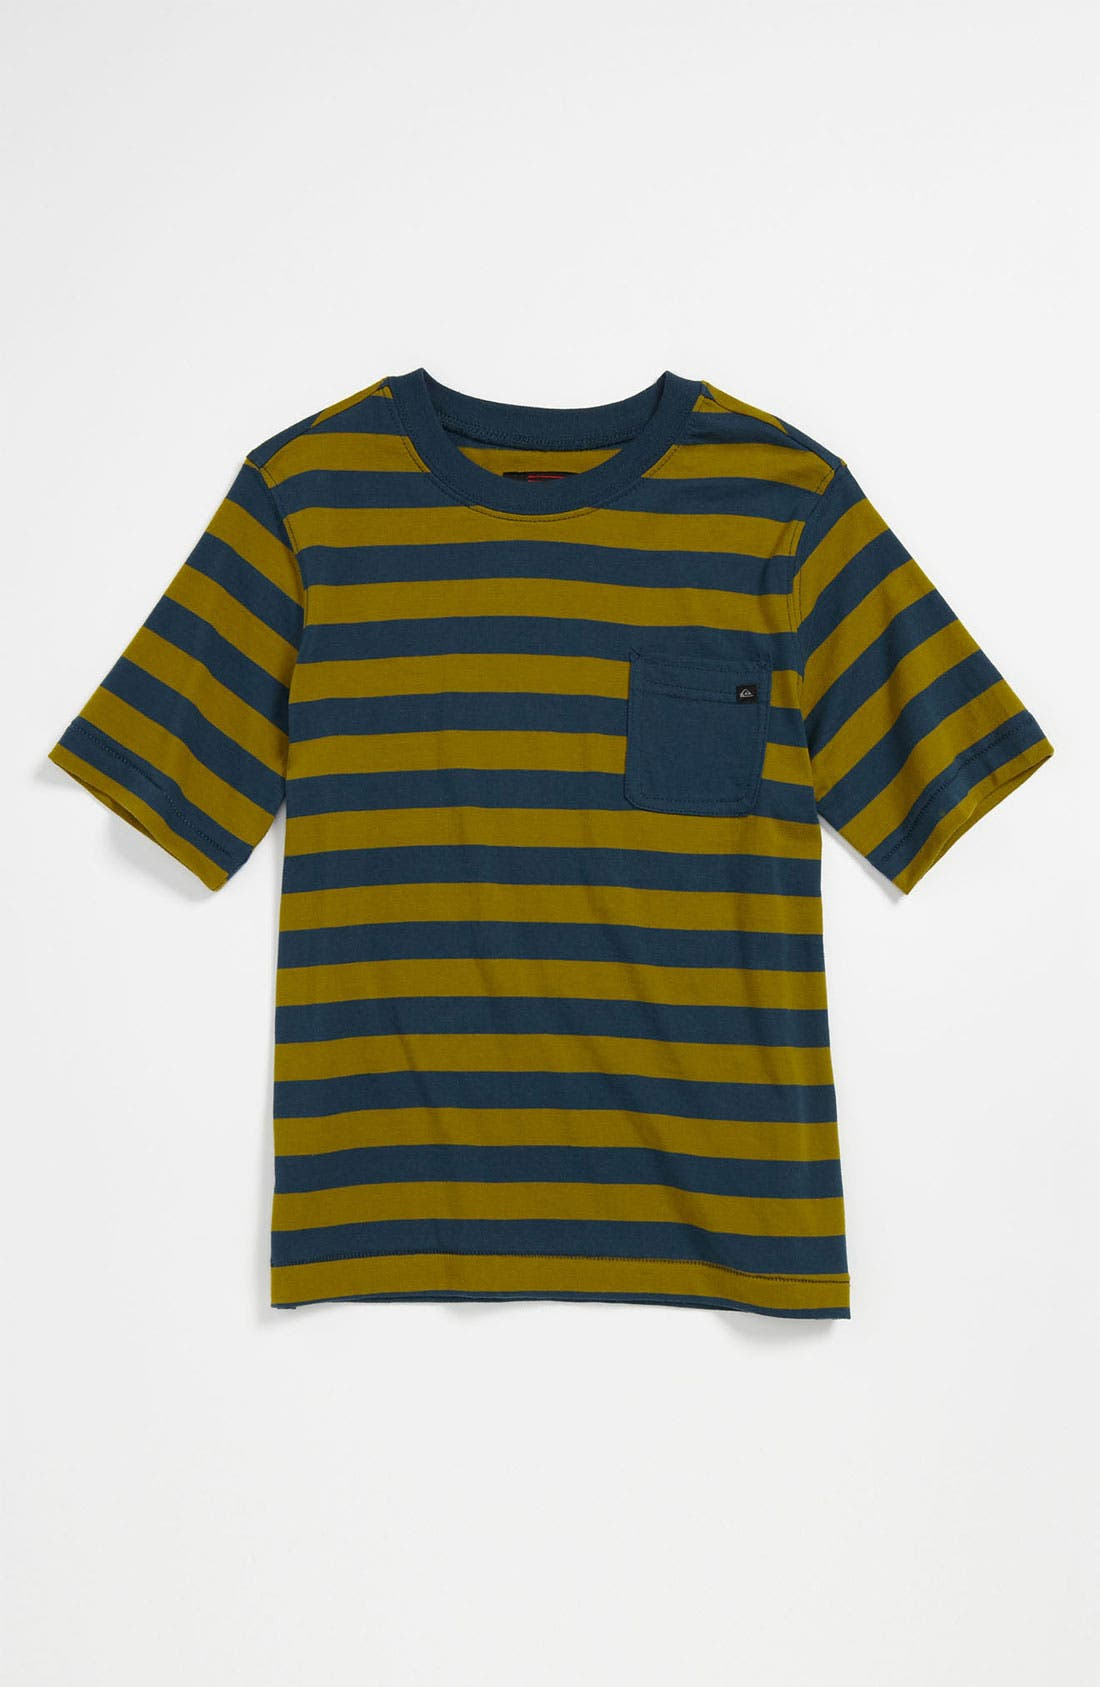 Alternate Image 1 Selected - Quiksilver 'Nolf' Crewneck T-Shirt (Little Boys)